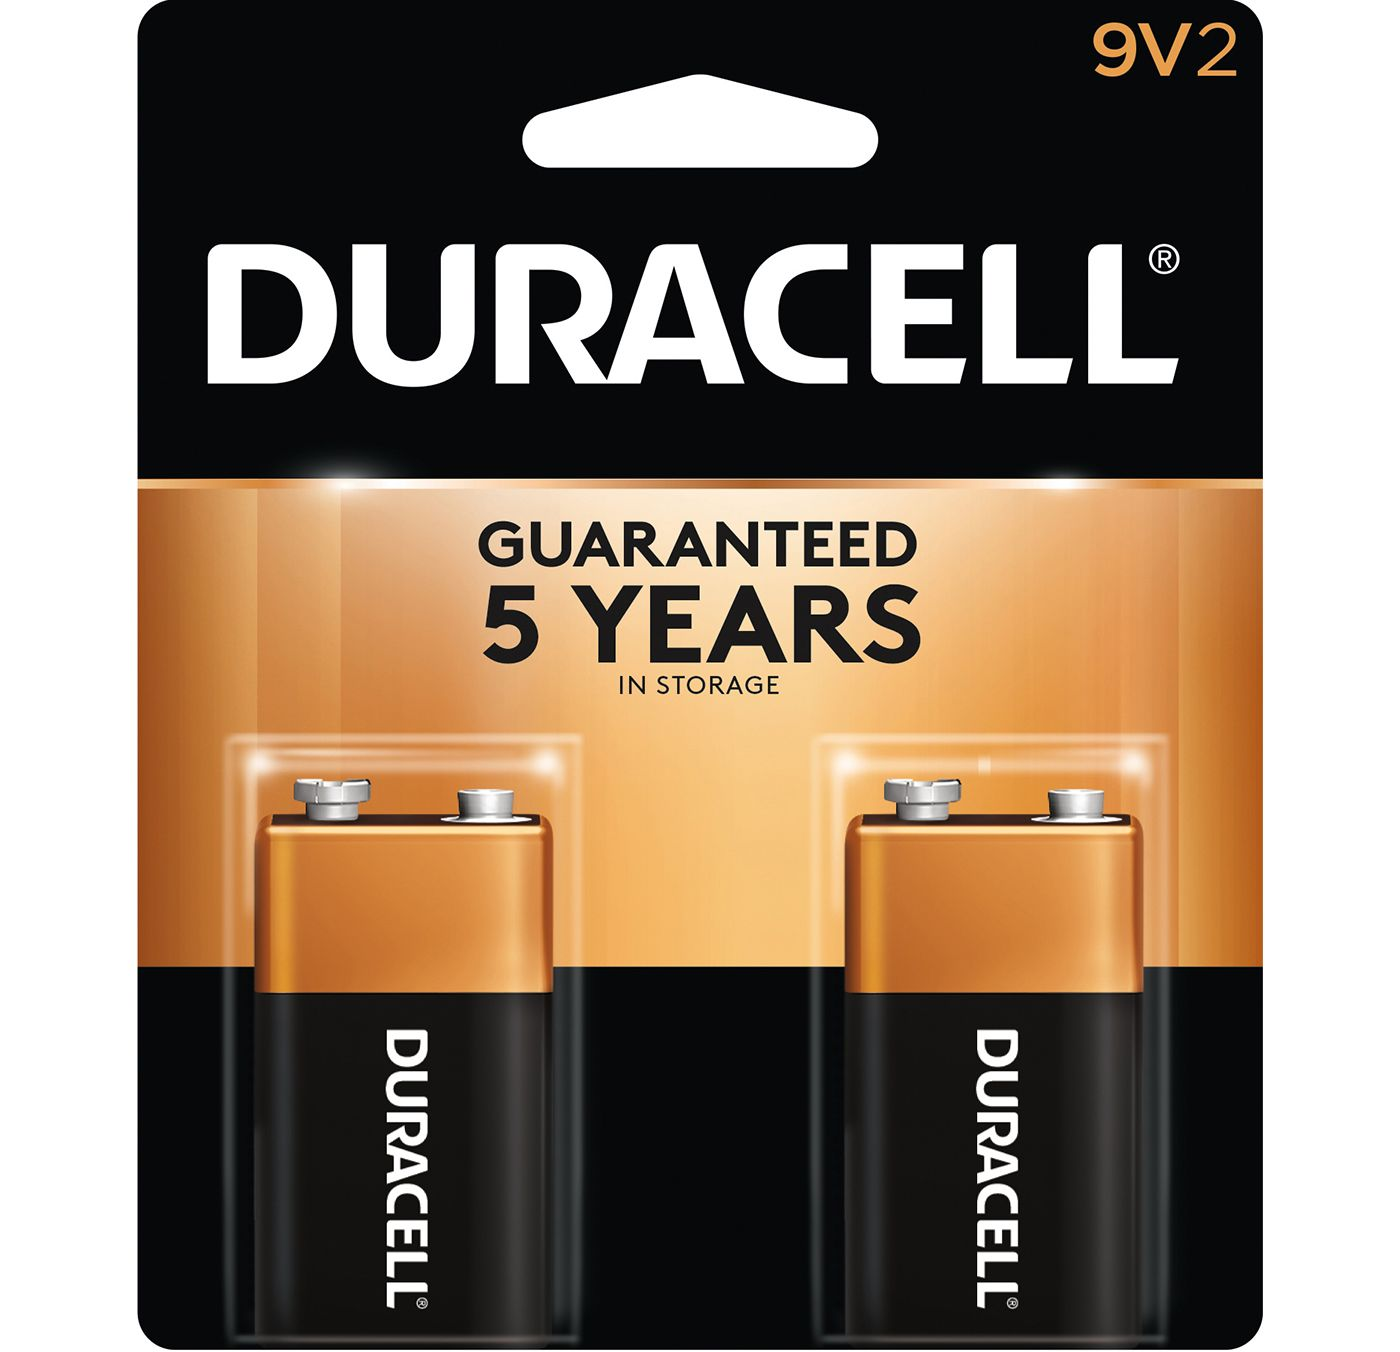 Duracell Coppertop 9V Alkaline Batteries – 2 Pack